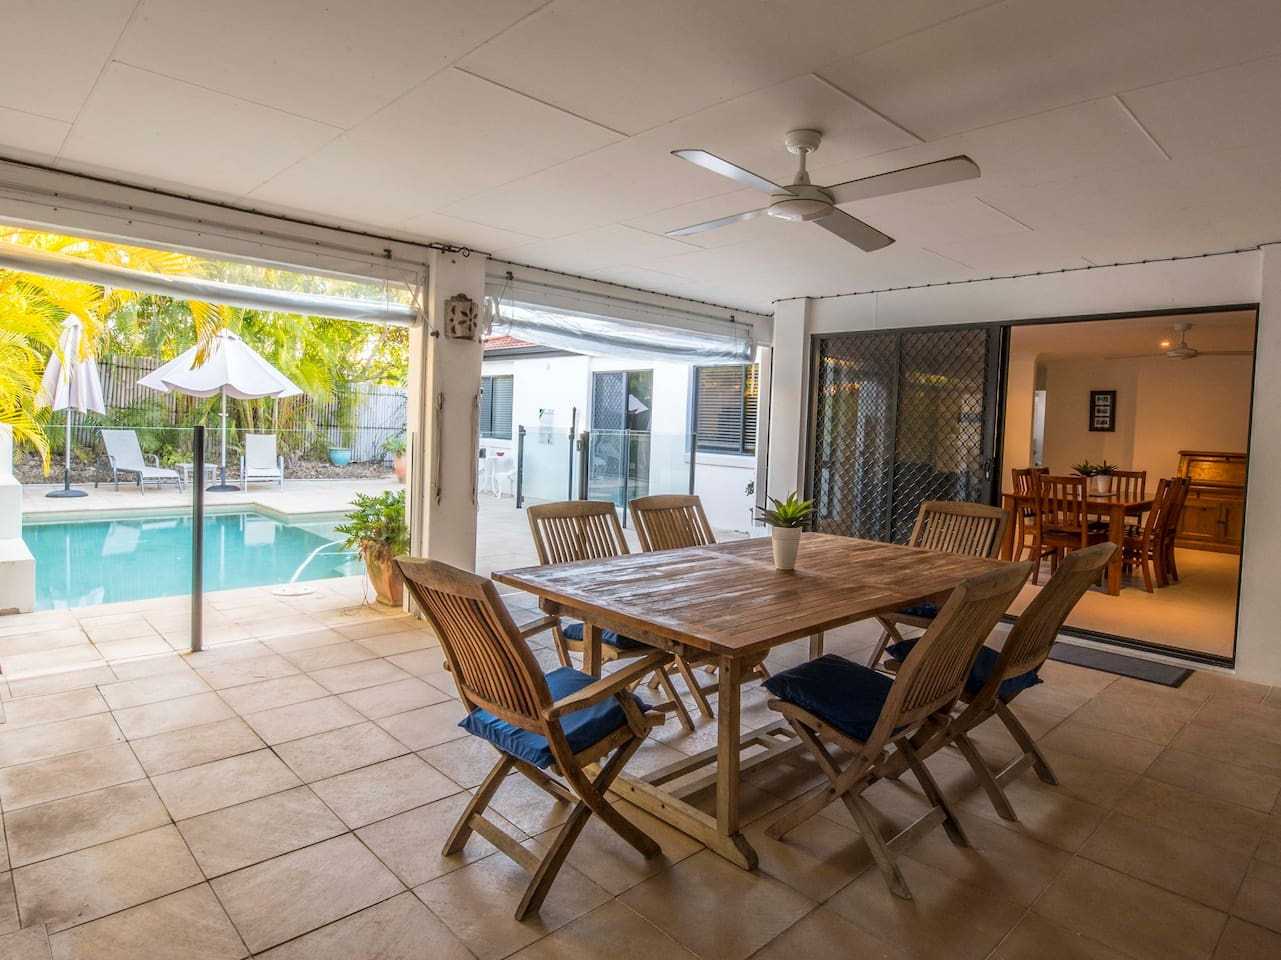 Huge covered entertainment area with large BBQ overlooking the pool - great for family gatherings